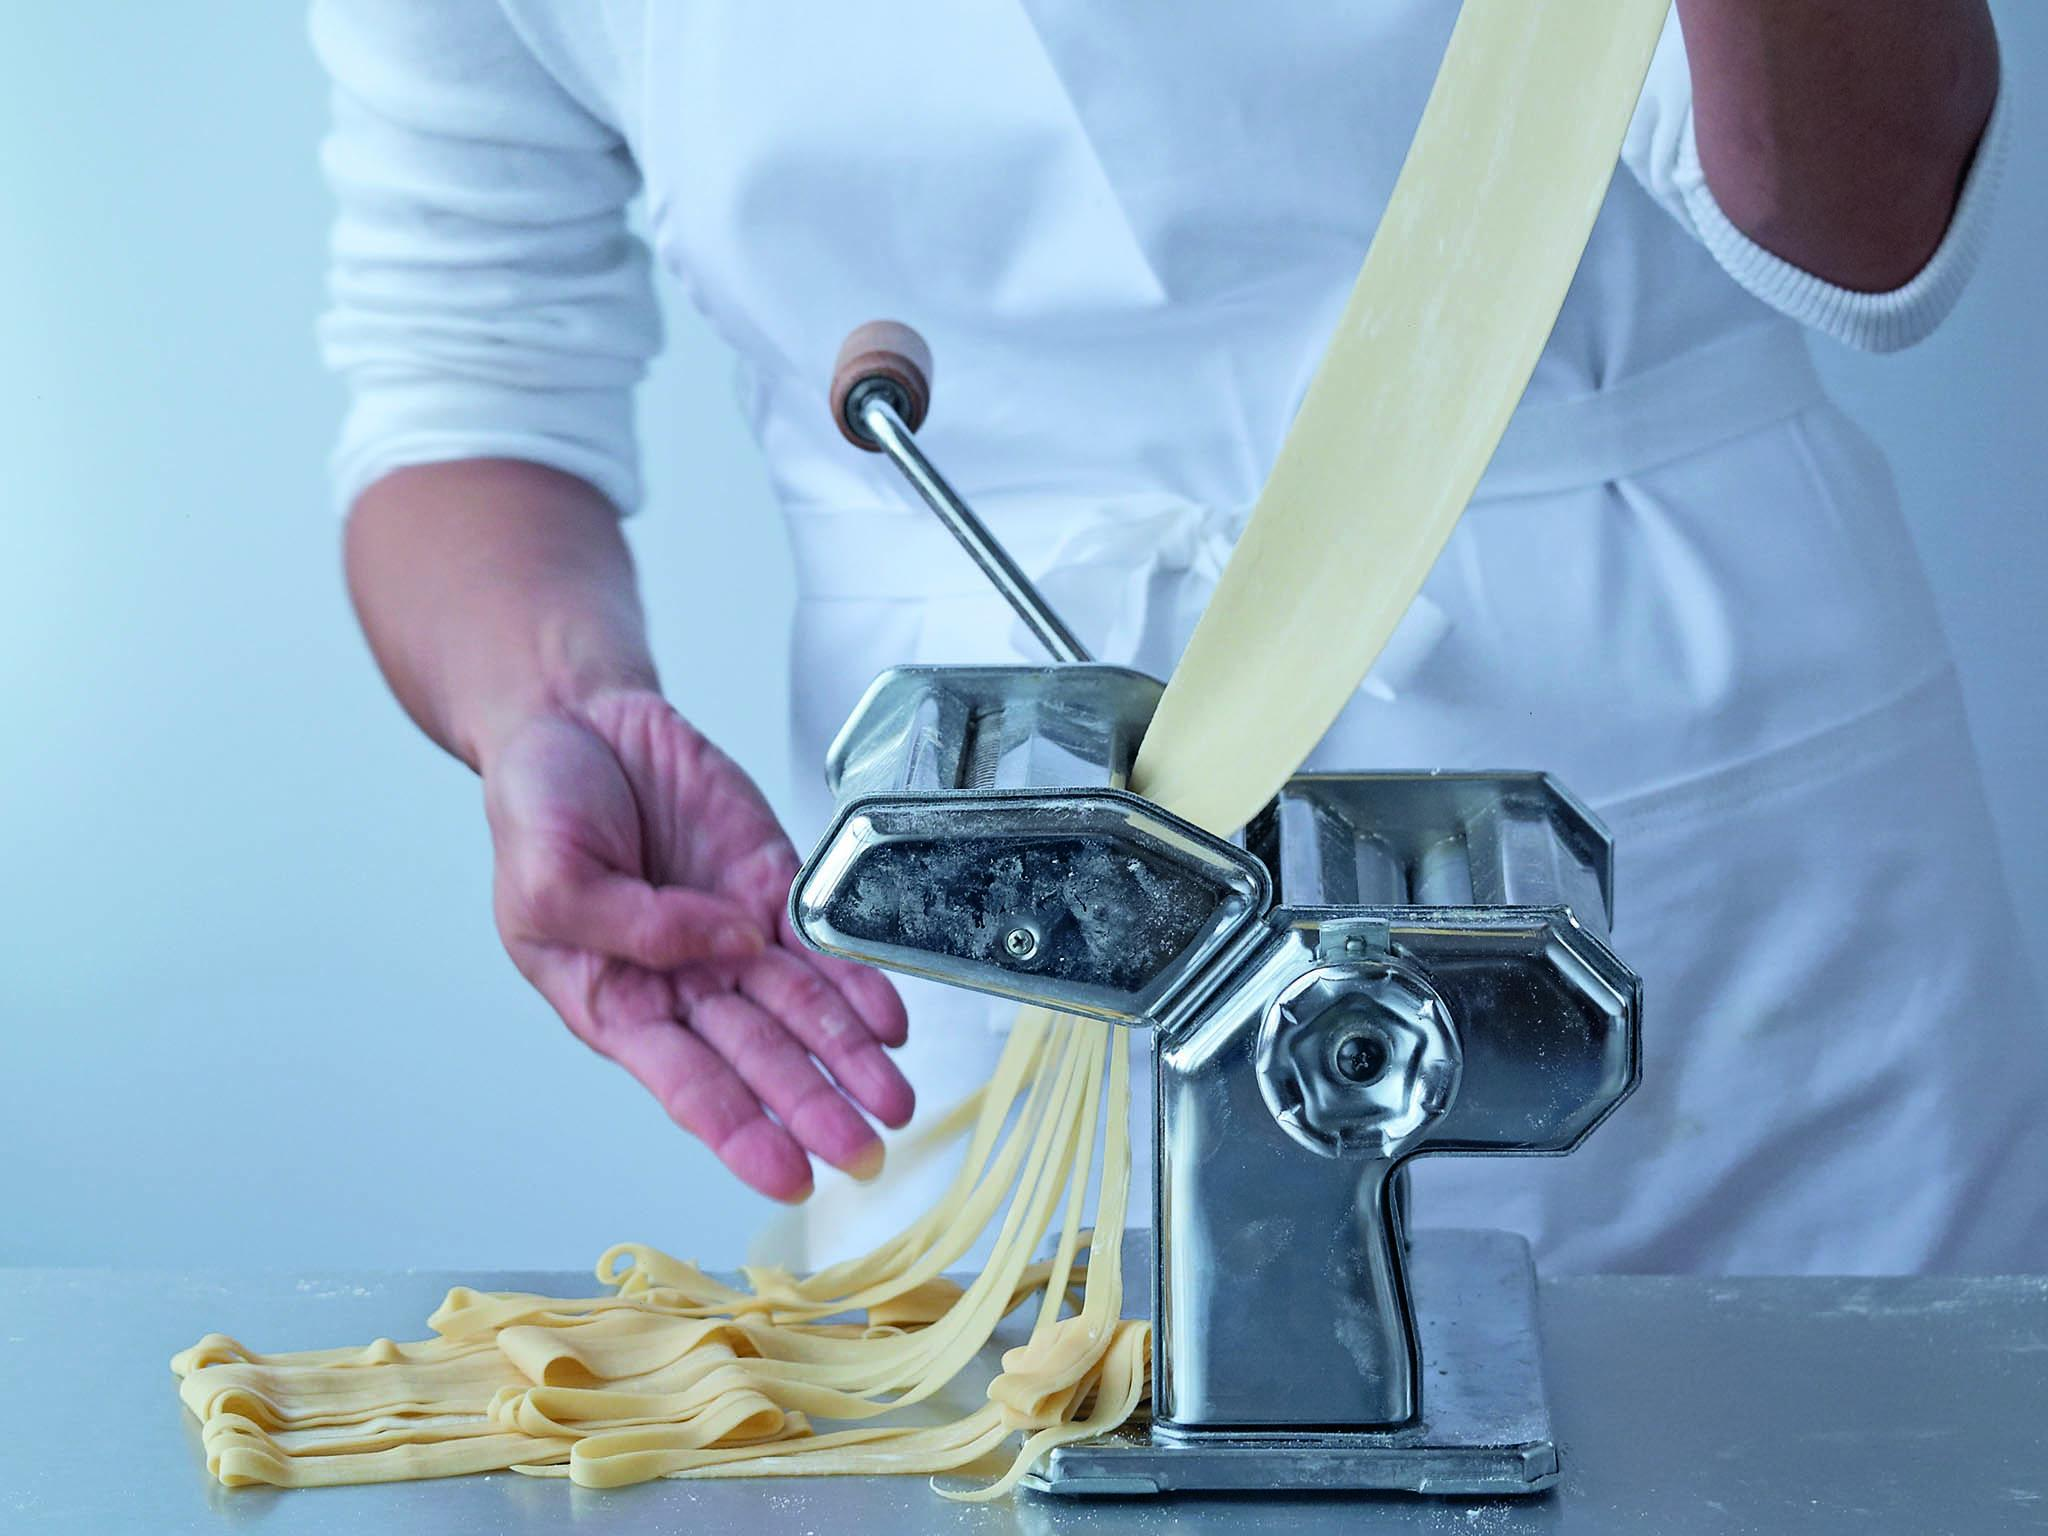 Leiths Guide To Making And Cooking Pasta The Independent Spaghetti How Do I Wire This Switch Page2 Doityourselfcom Perfect Cut Cutters